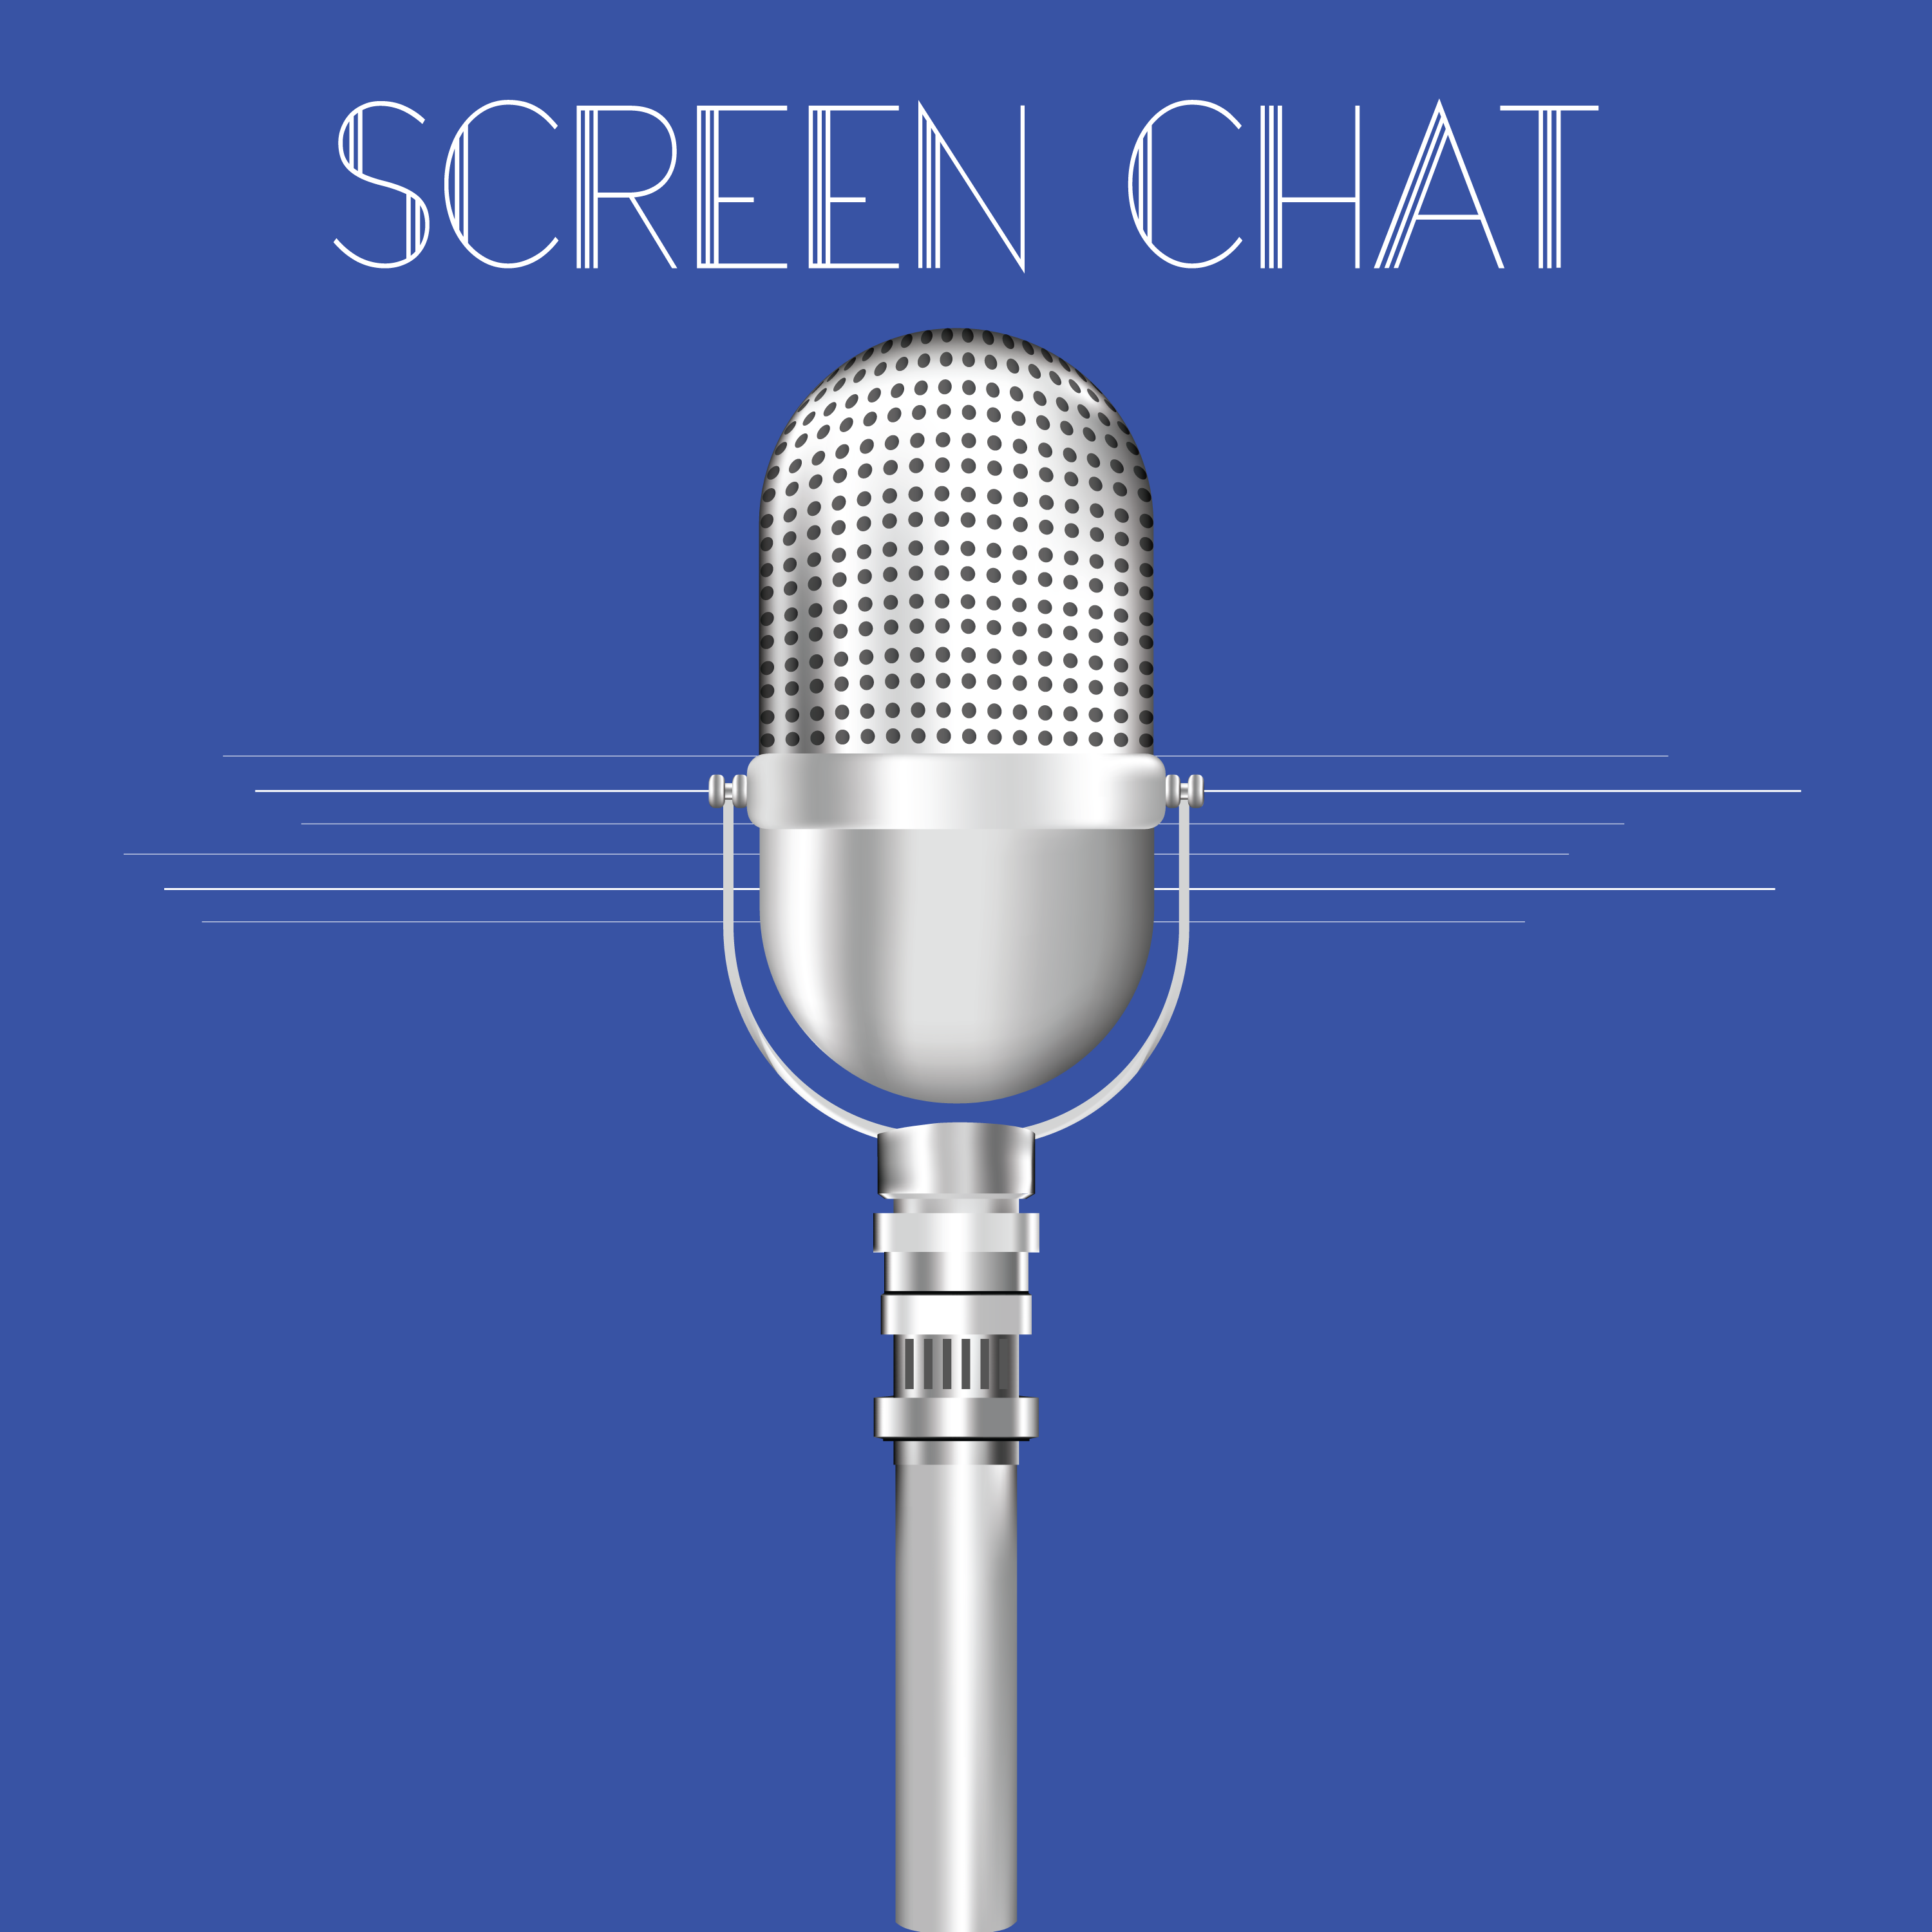 Screen Chat episode 01